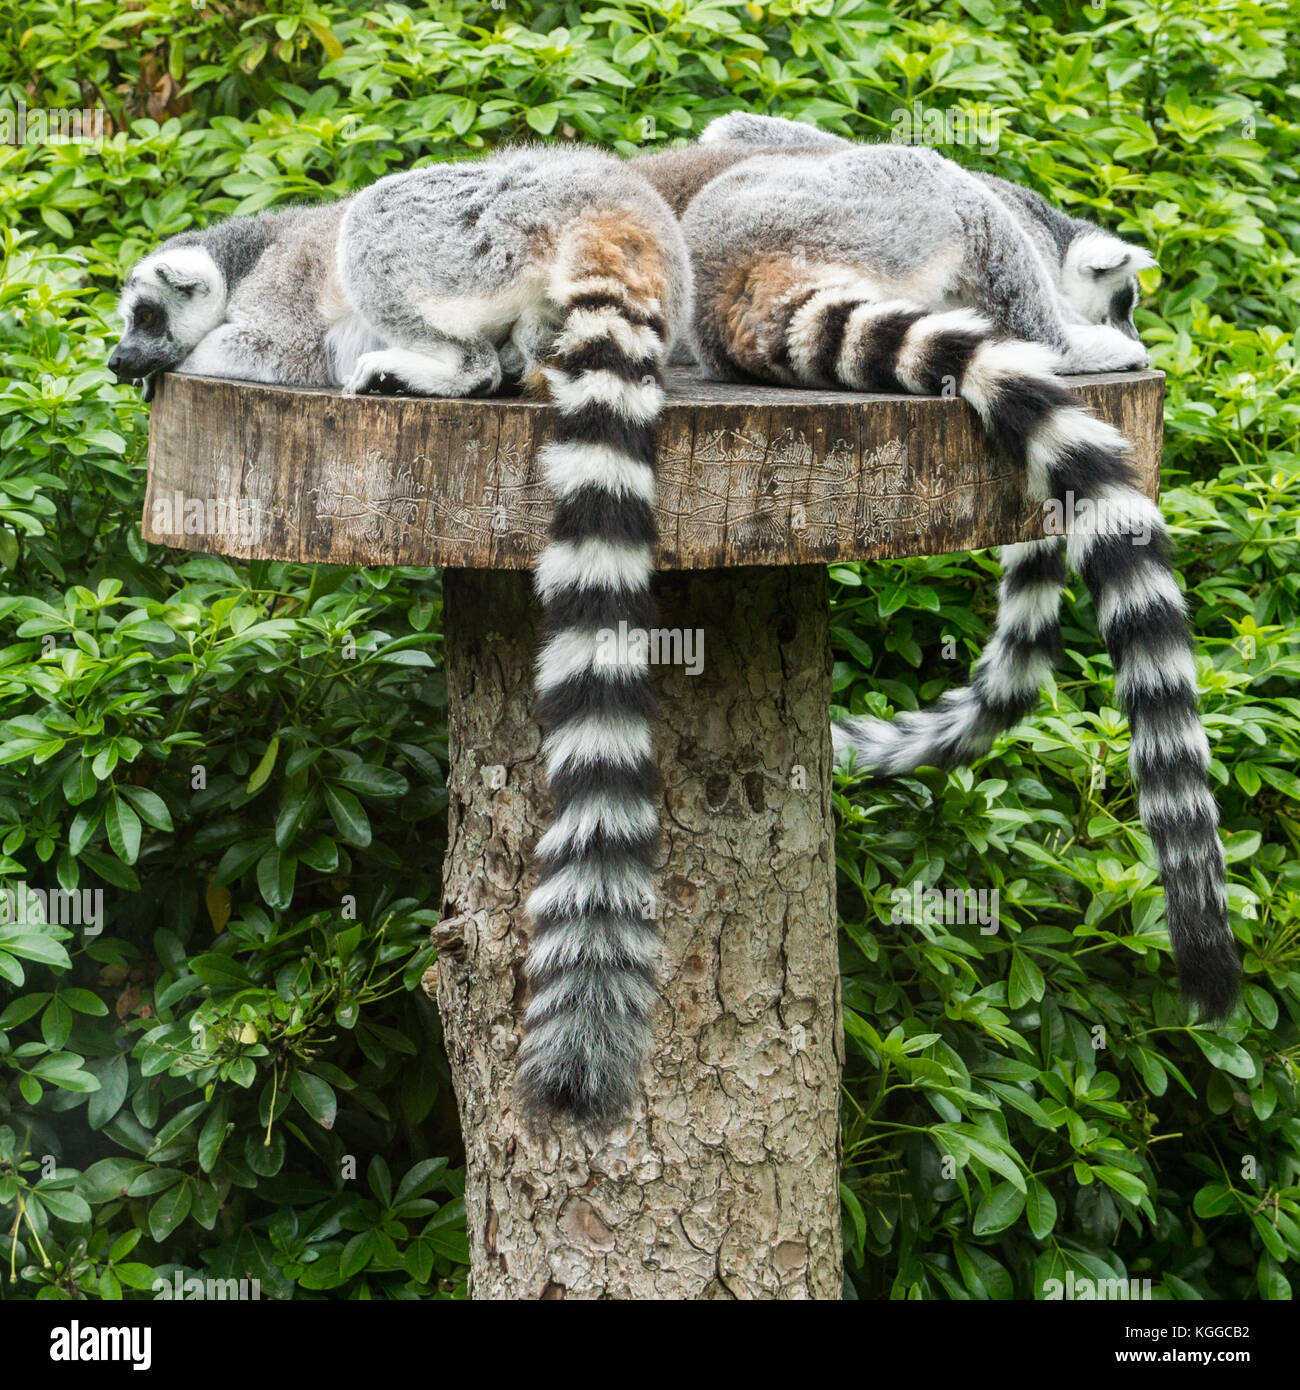 A group of ring tailed lemurs take a nap! - Stock Image